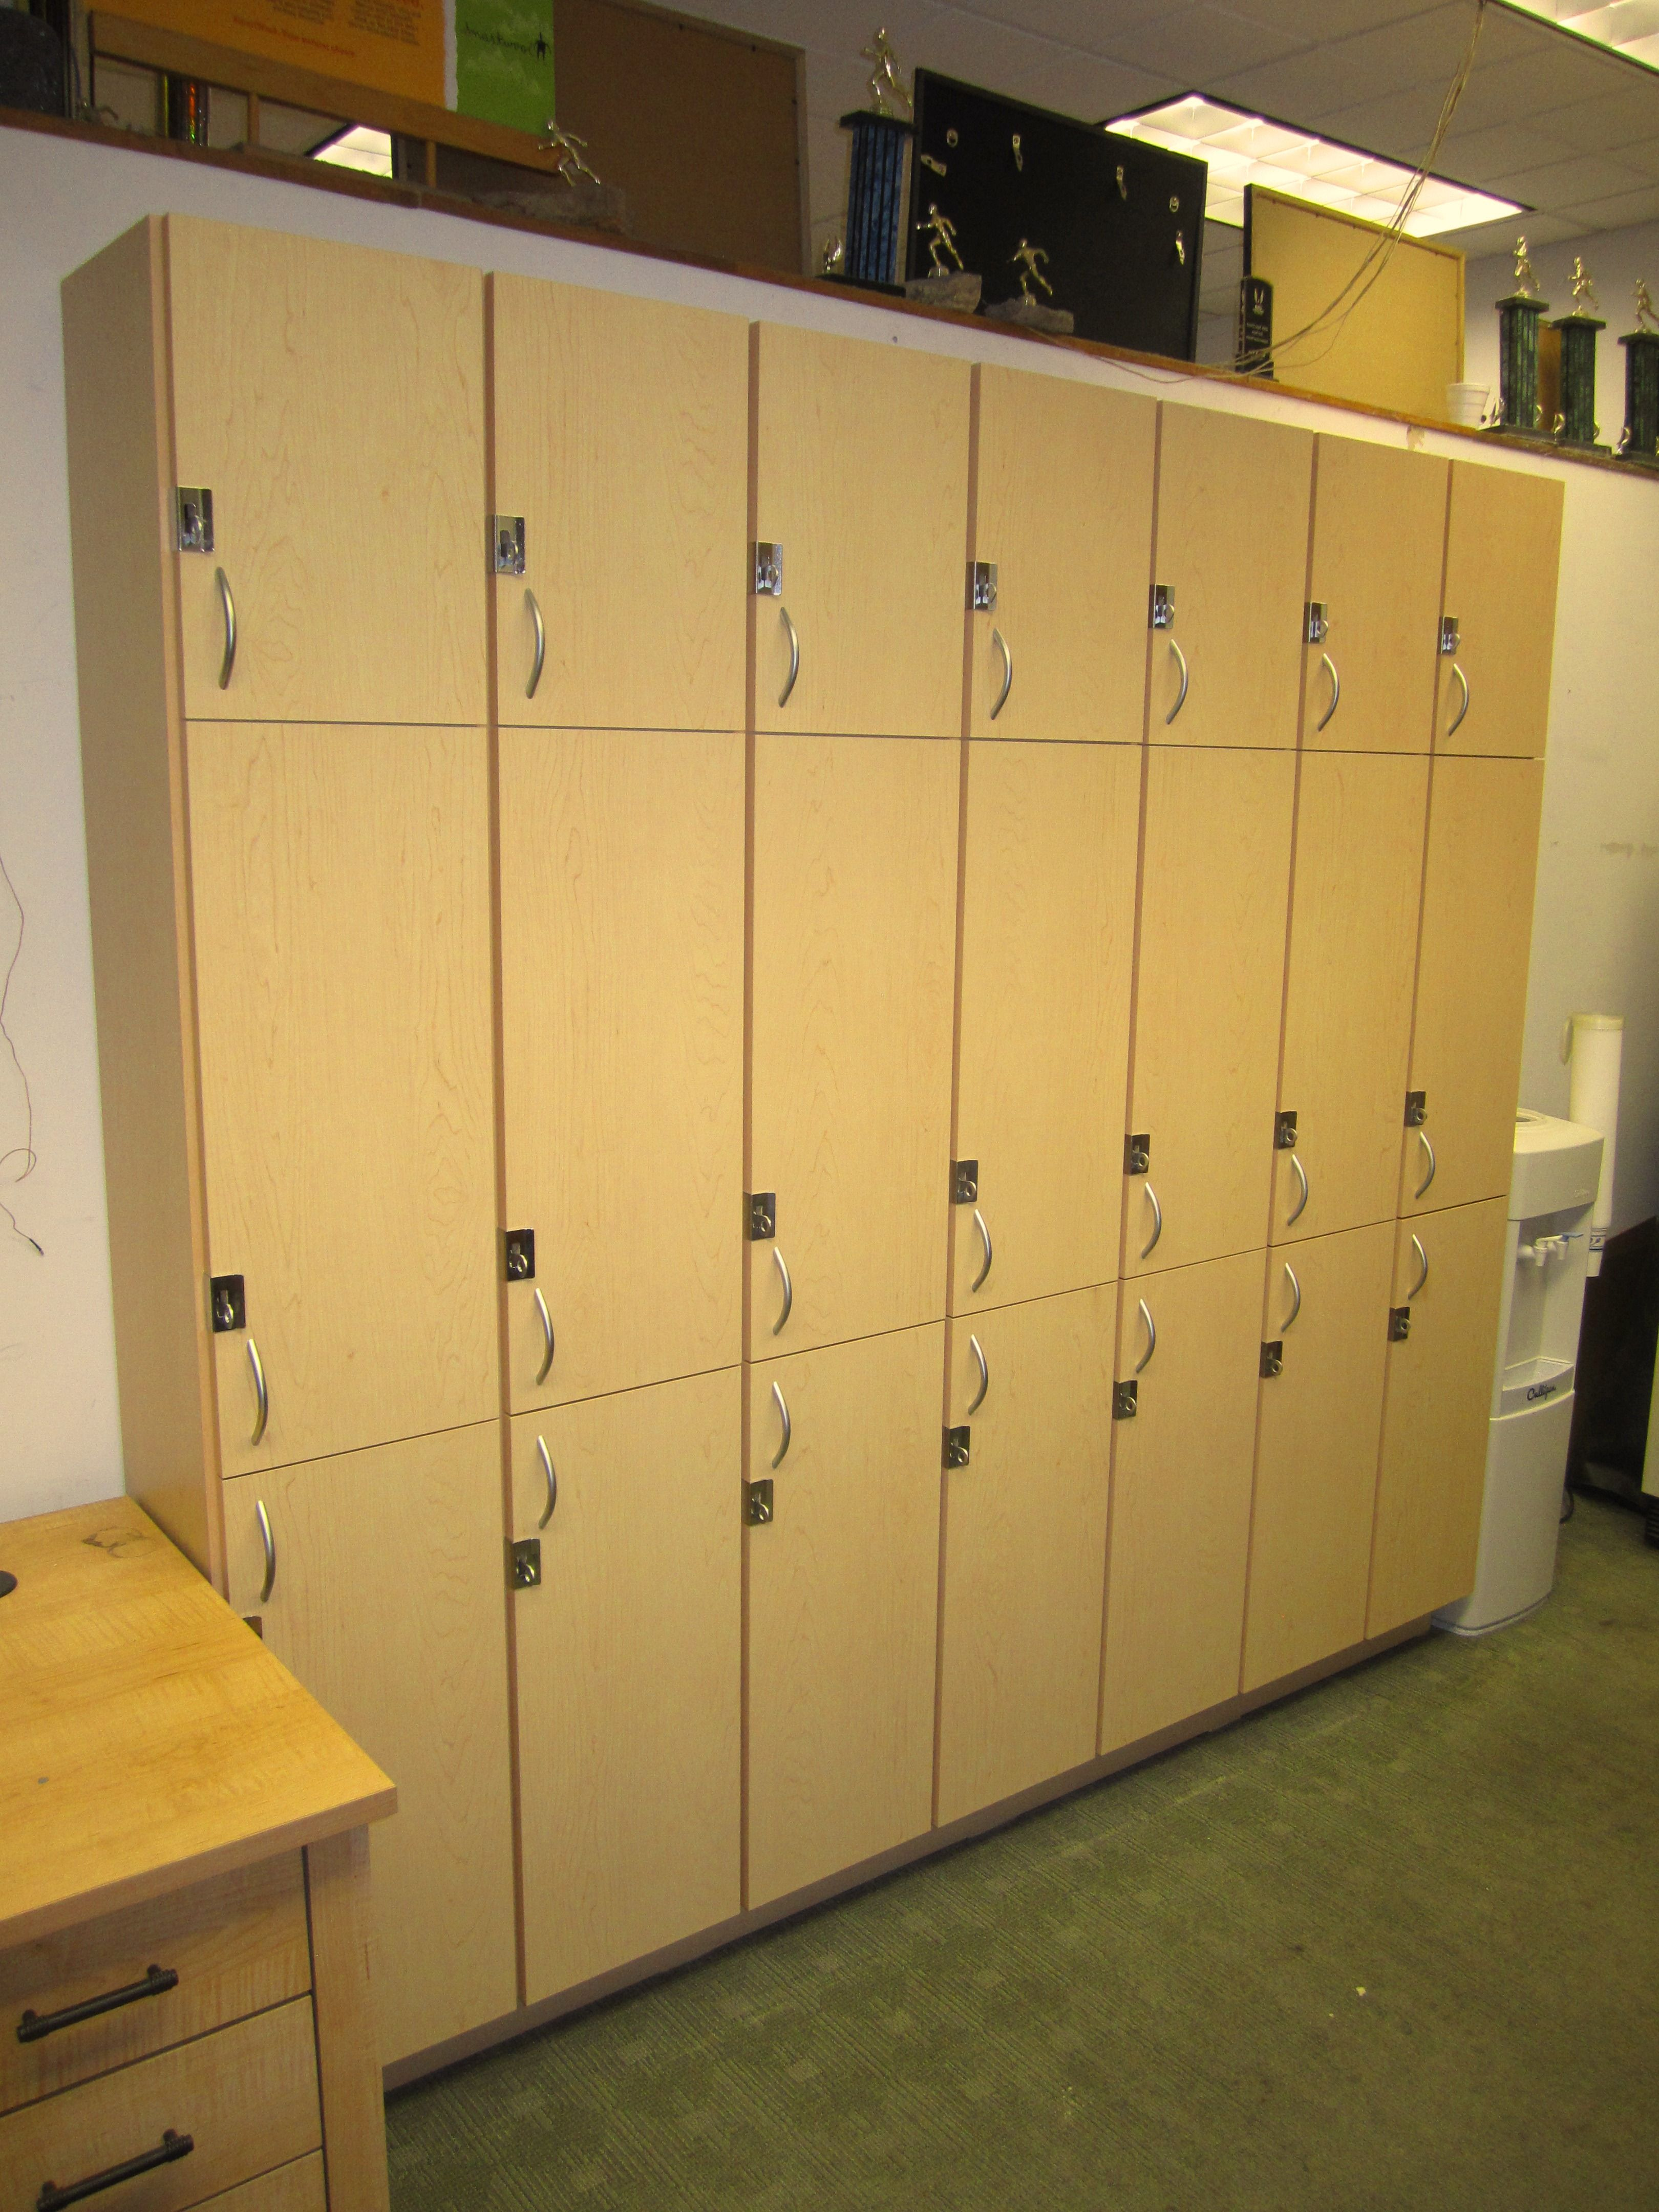 Custom Employee Lockers Designed And Installed For A Local Running Store.  Learn More At Www.closetsforlife.com.